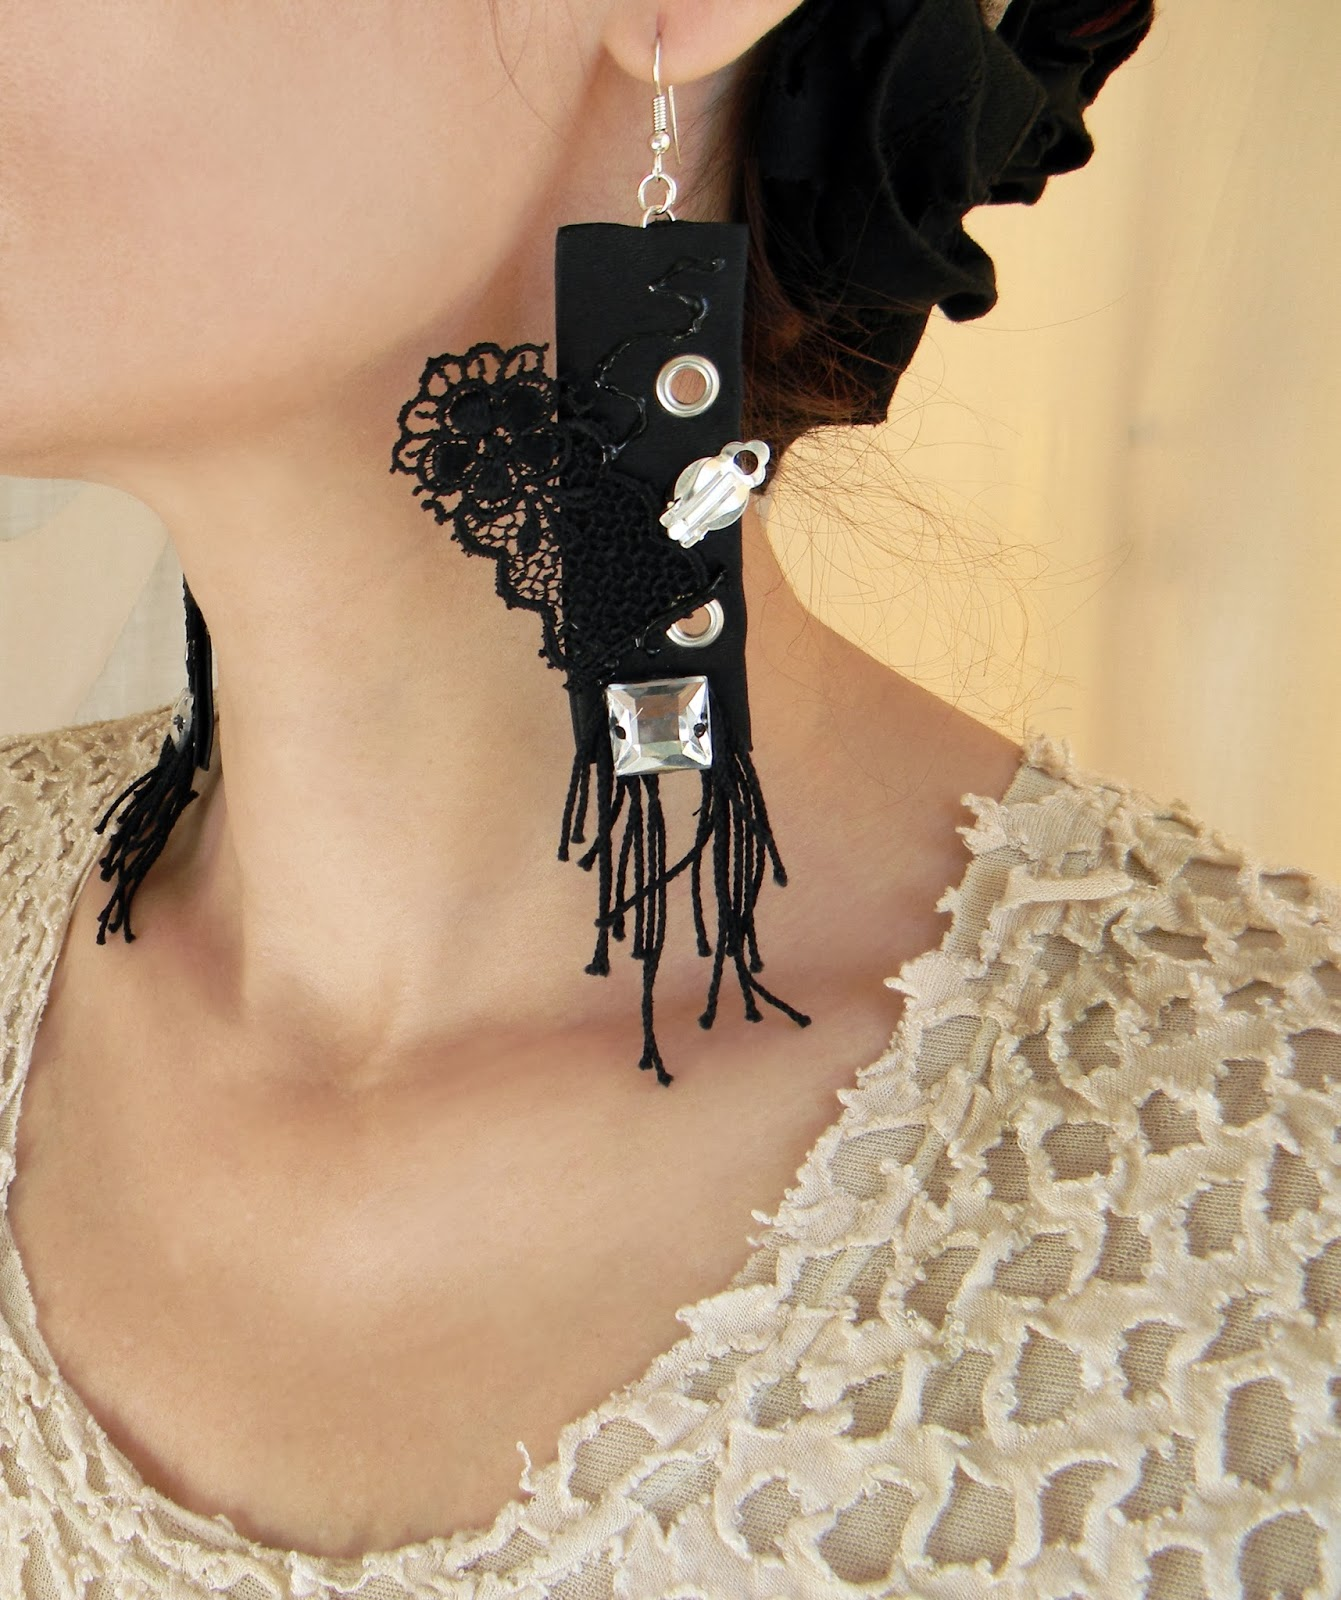 Gothic Earrings Steampunk Fusion Earrings with Quirky Applique in Black and Silvery